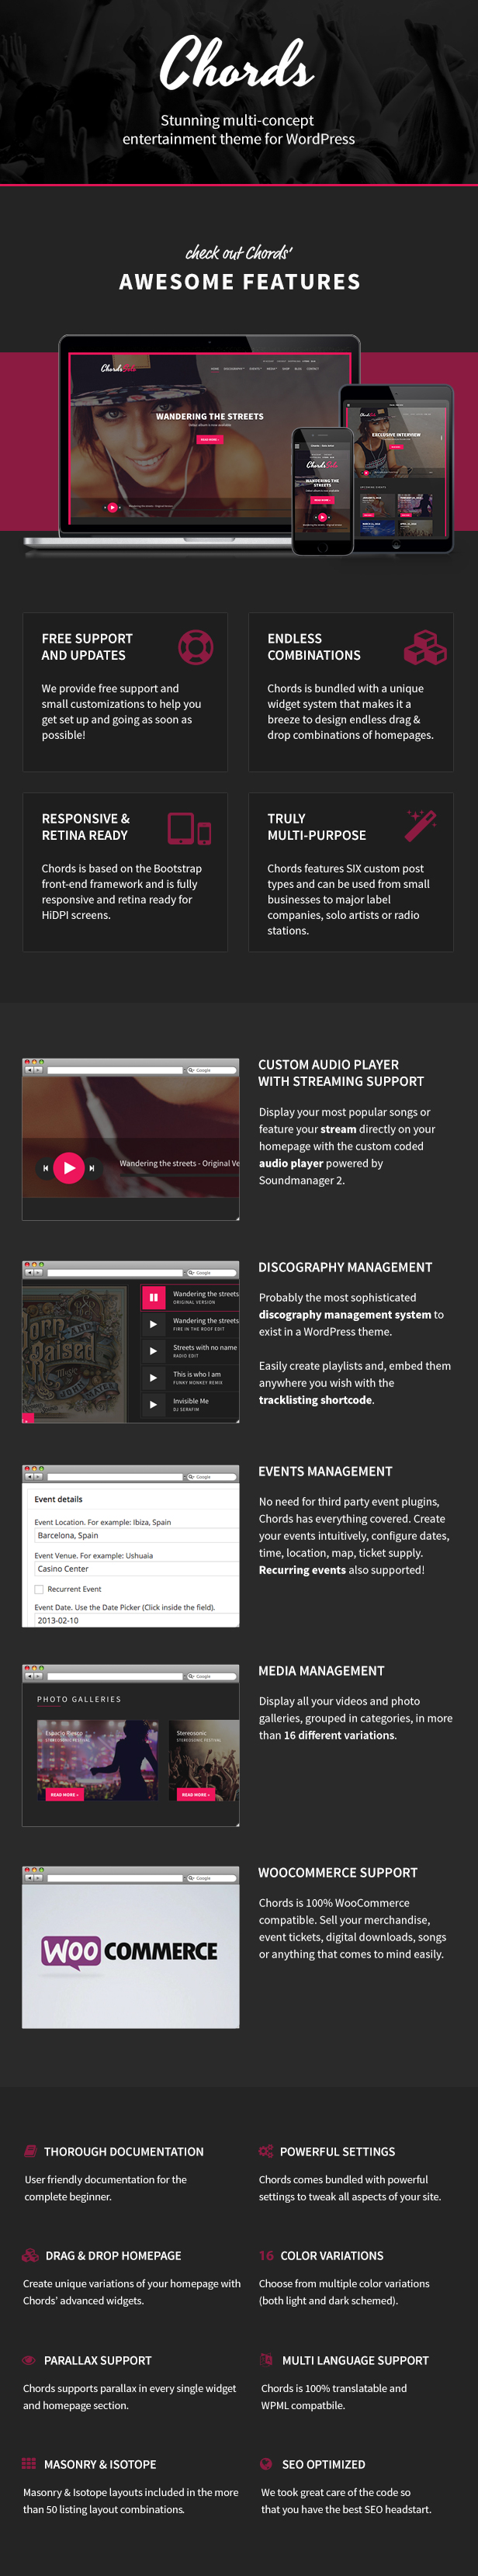 Chords - Music / Artist / Radio WordPress theme